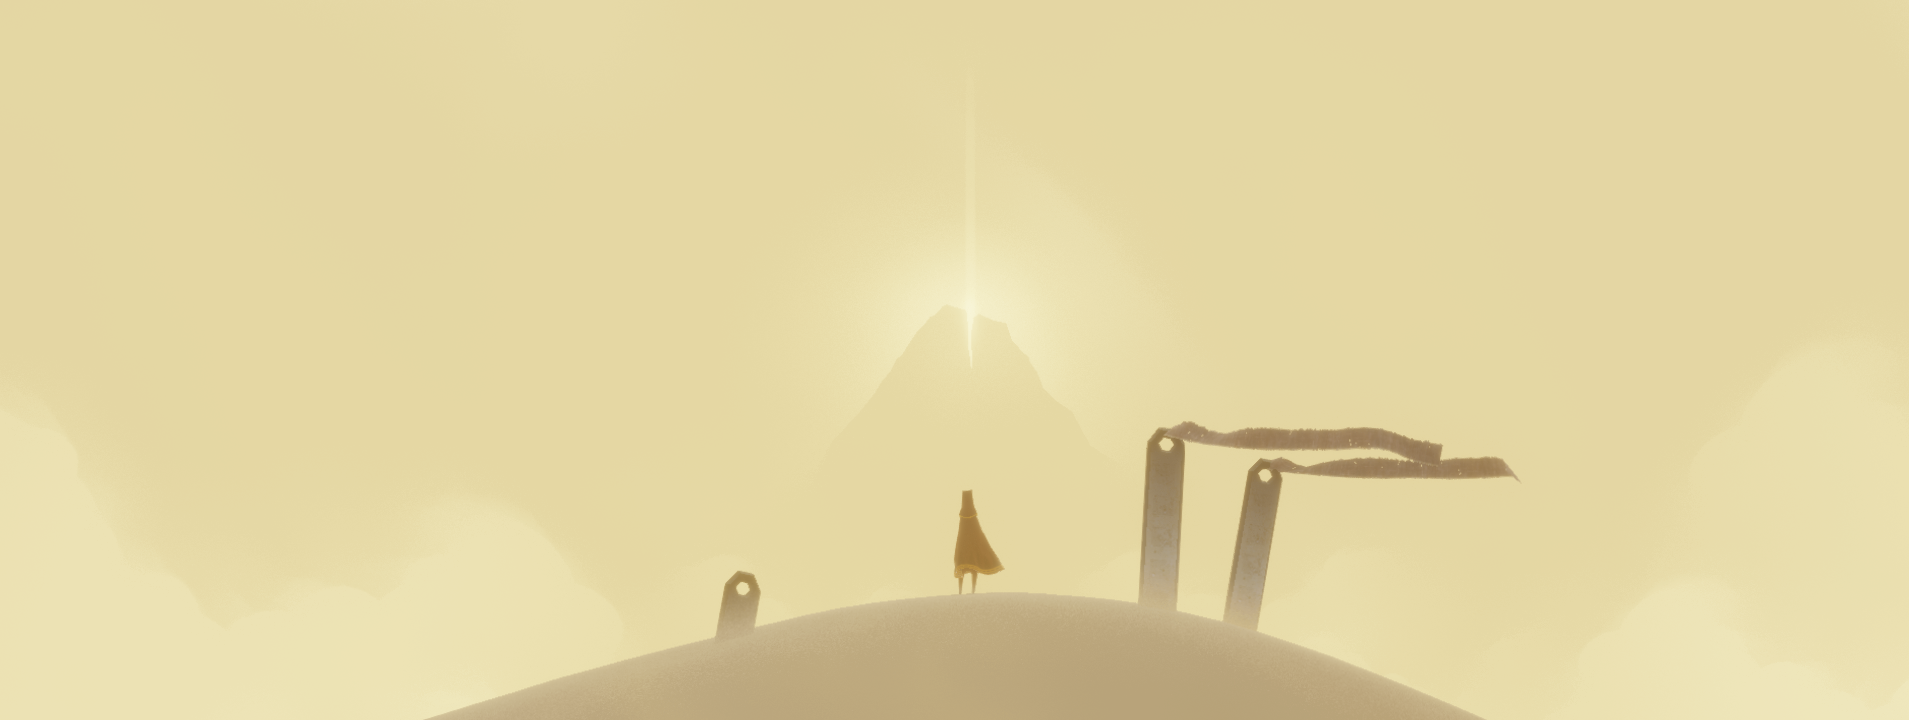 Journey background